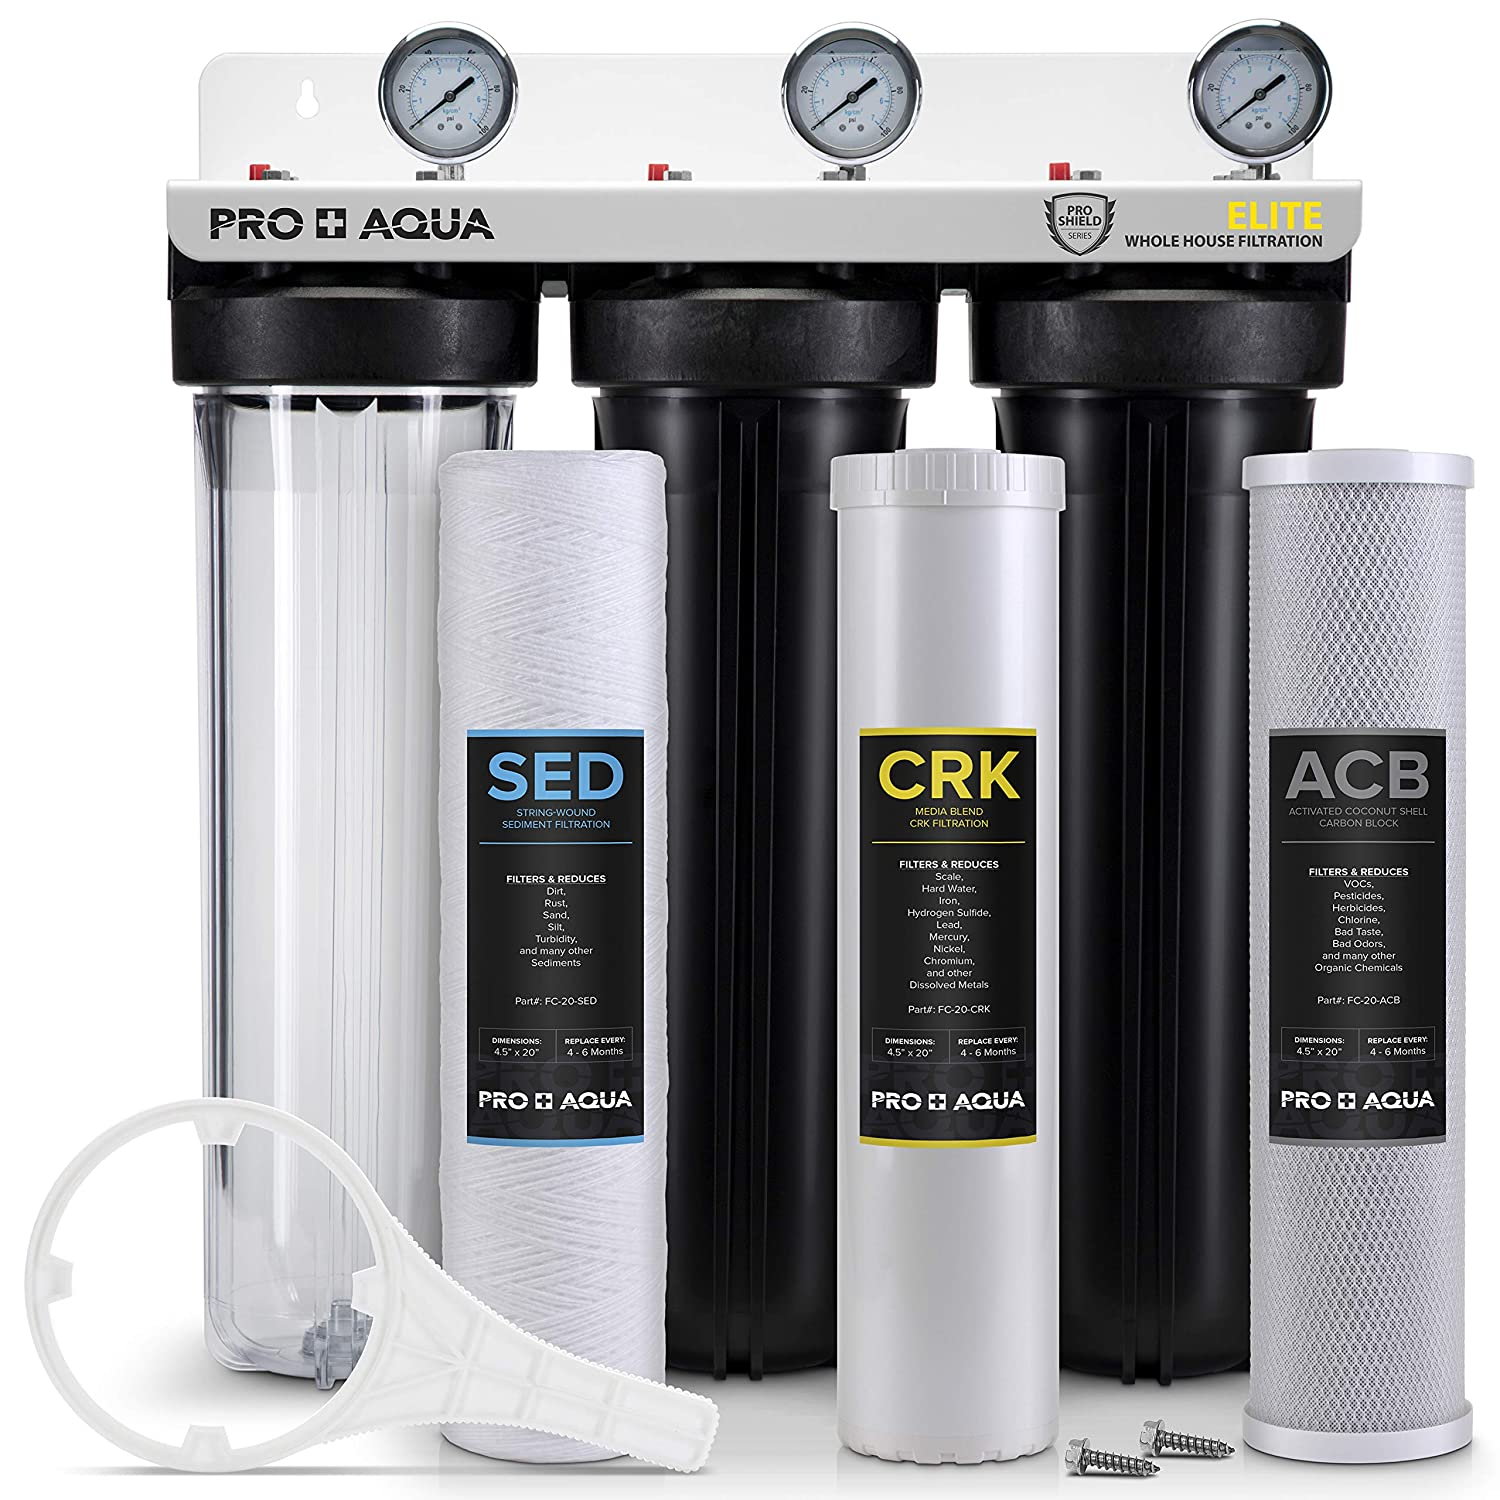 """Pro Aqua ELITE Whole House Water Filter 3 Stage Well Water Filtration System w/Gauges, PR Button, 1"""" Ports, Filter Set"""